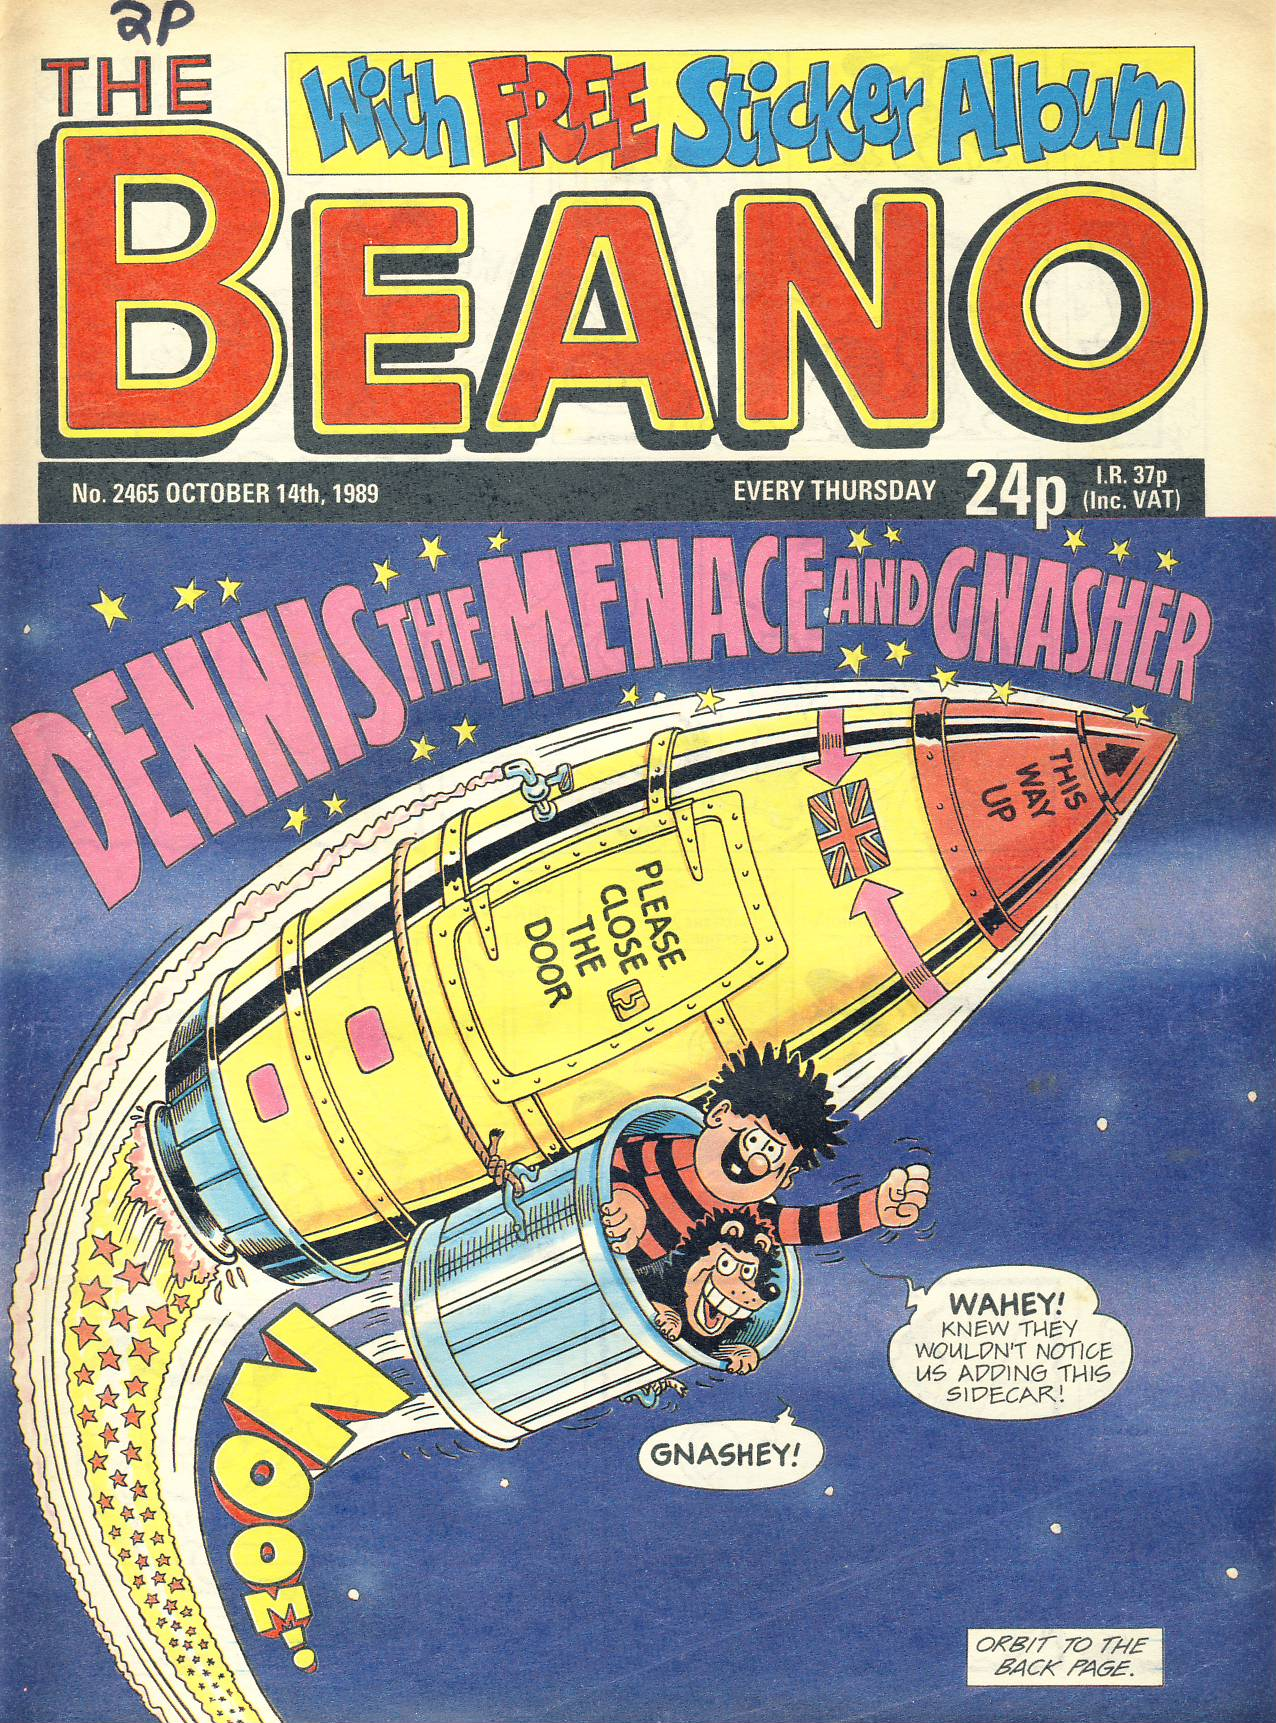 1989 October 14th BEANO vintage comic Good Gift Christmas Present Birthday Anniversary ref324a pre-owned item in good read condition.